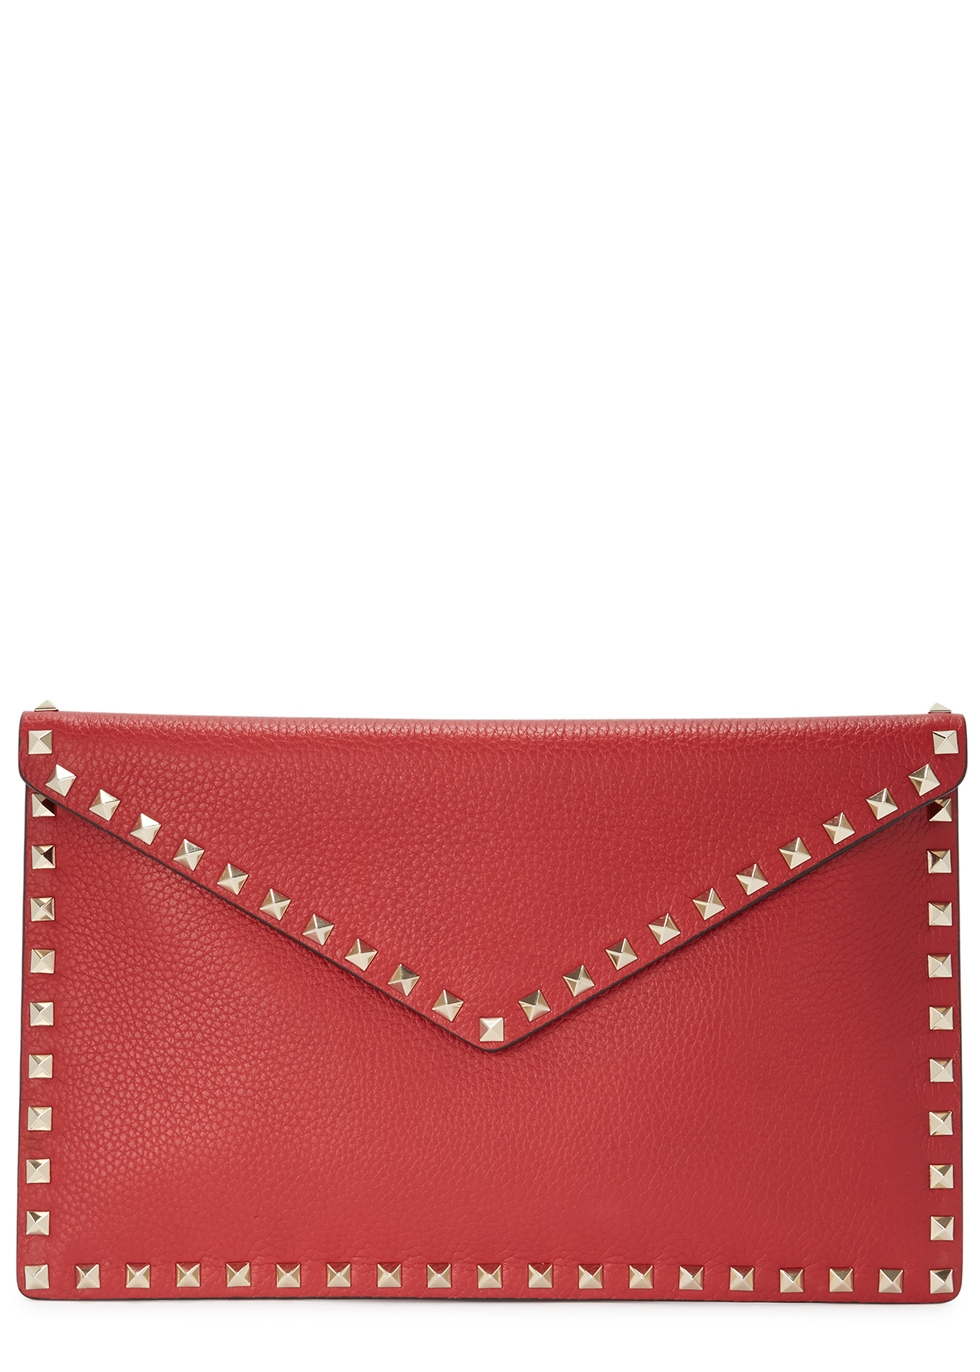 Rockstud Red Leather Pouch in 0Ro Red